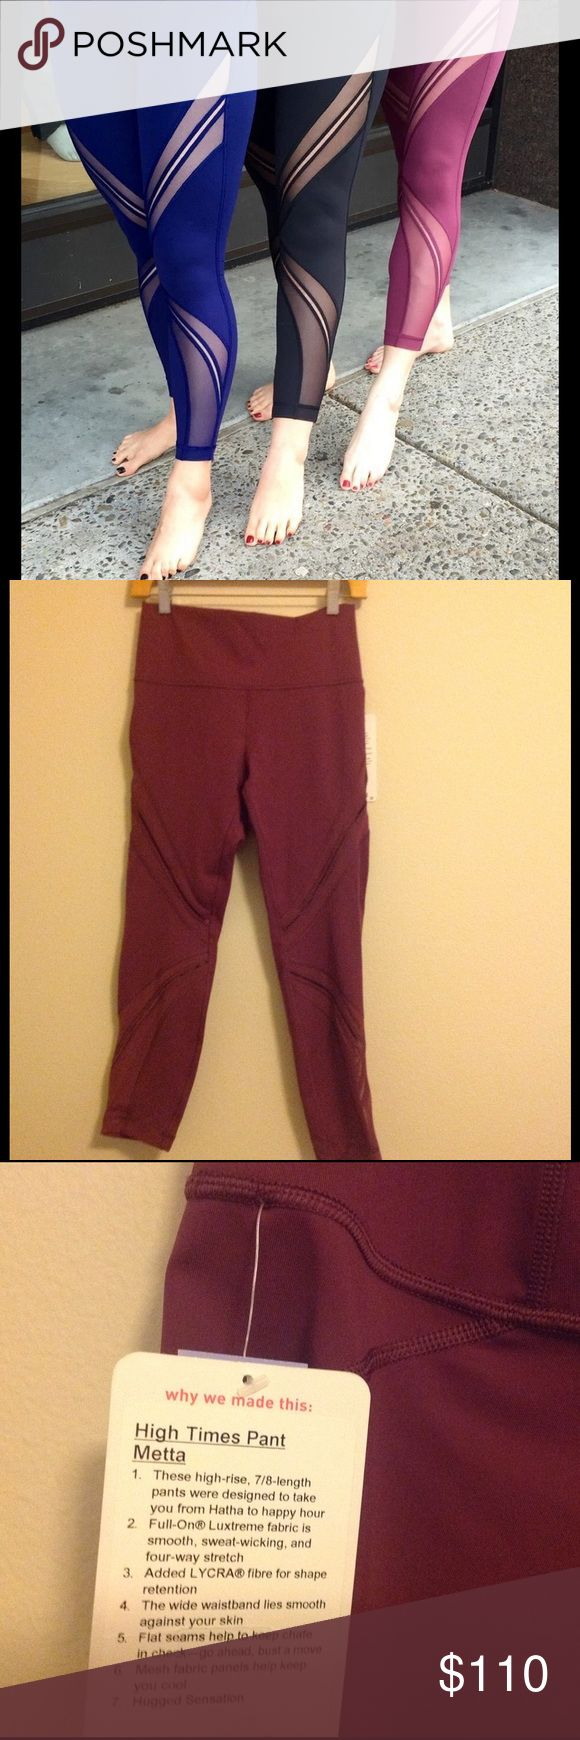 Lululemon High Times Pant Metta ➡️ New with Tags, color is red grape ➡️ Price is Firm ➡️ No Trades  ➡️ No rude comments ➡️ Please check out my other listings to bundle  ❤️ Thank you and happy shopping! lululemon athletica Pants Leggings